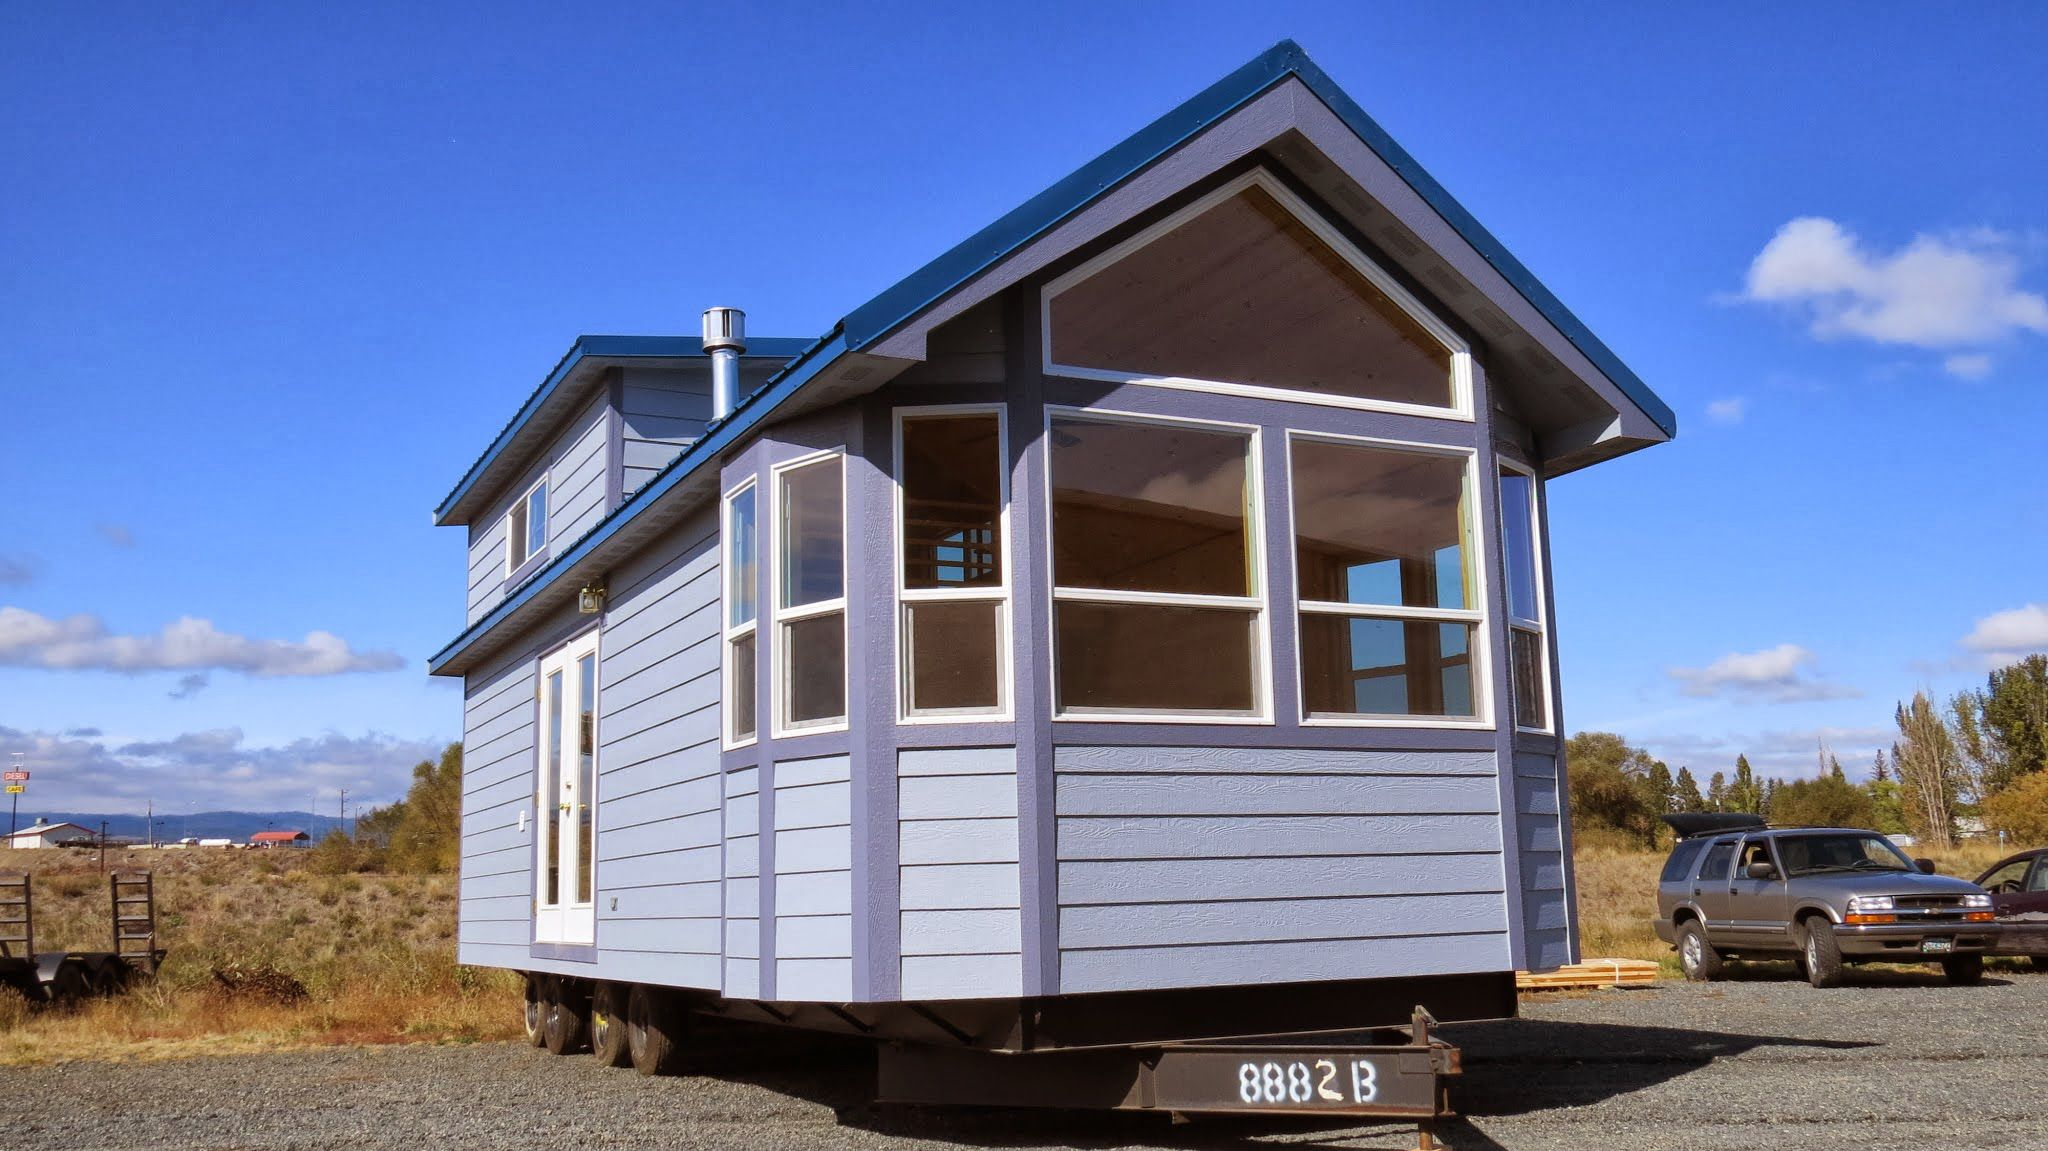 This is a park model tiny house on wheels called the Tillamook